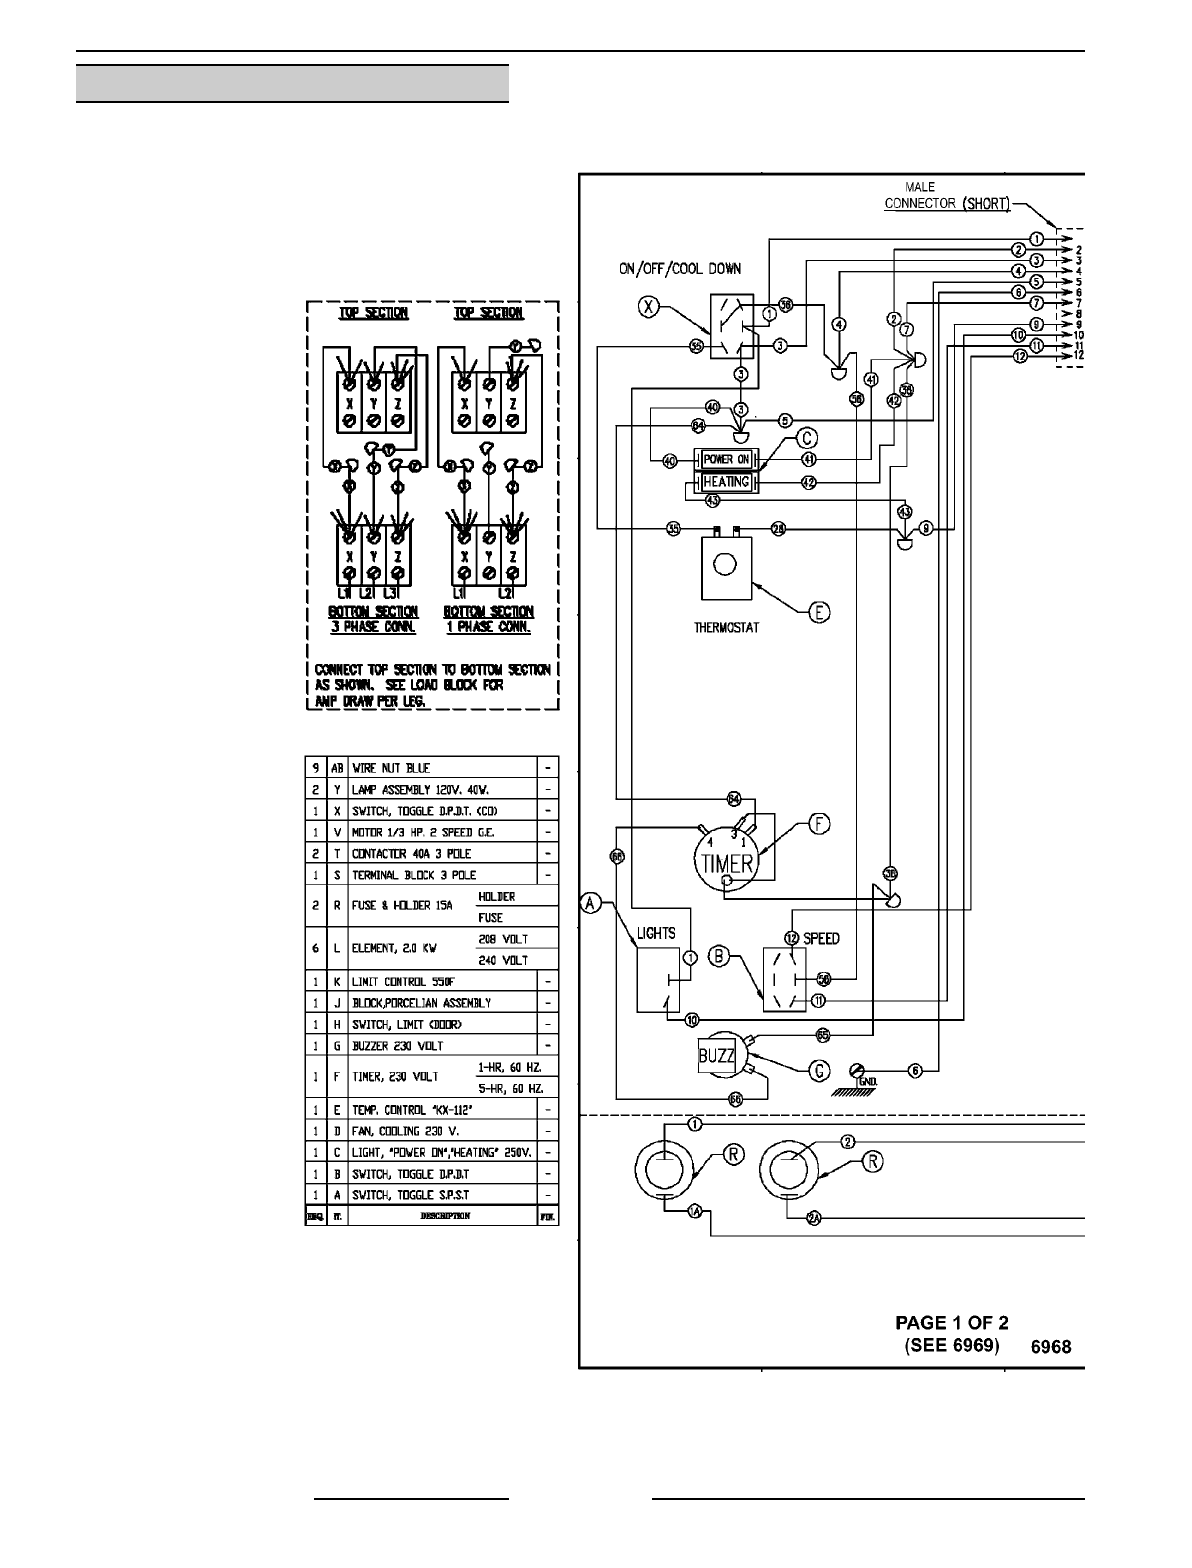 0817ac3c 3137 4604 9f9b 78b6d15f93e9 bg2c page 44 of vulcan hart convection oven vc4ed user guide hard wiring diagram for goulds we0511h pump at bakdesigns.co